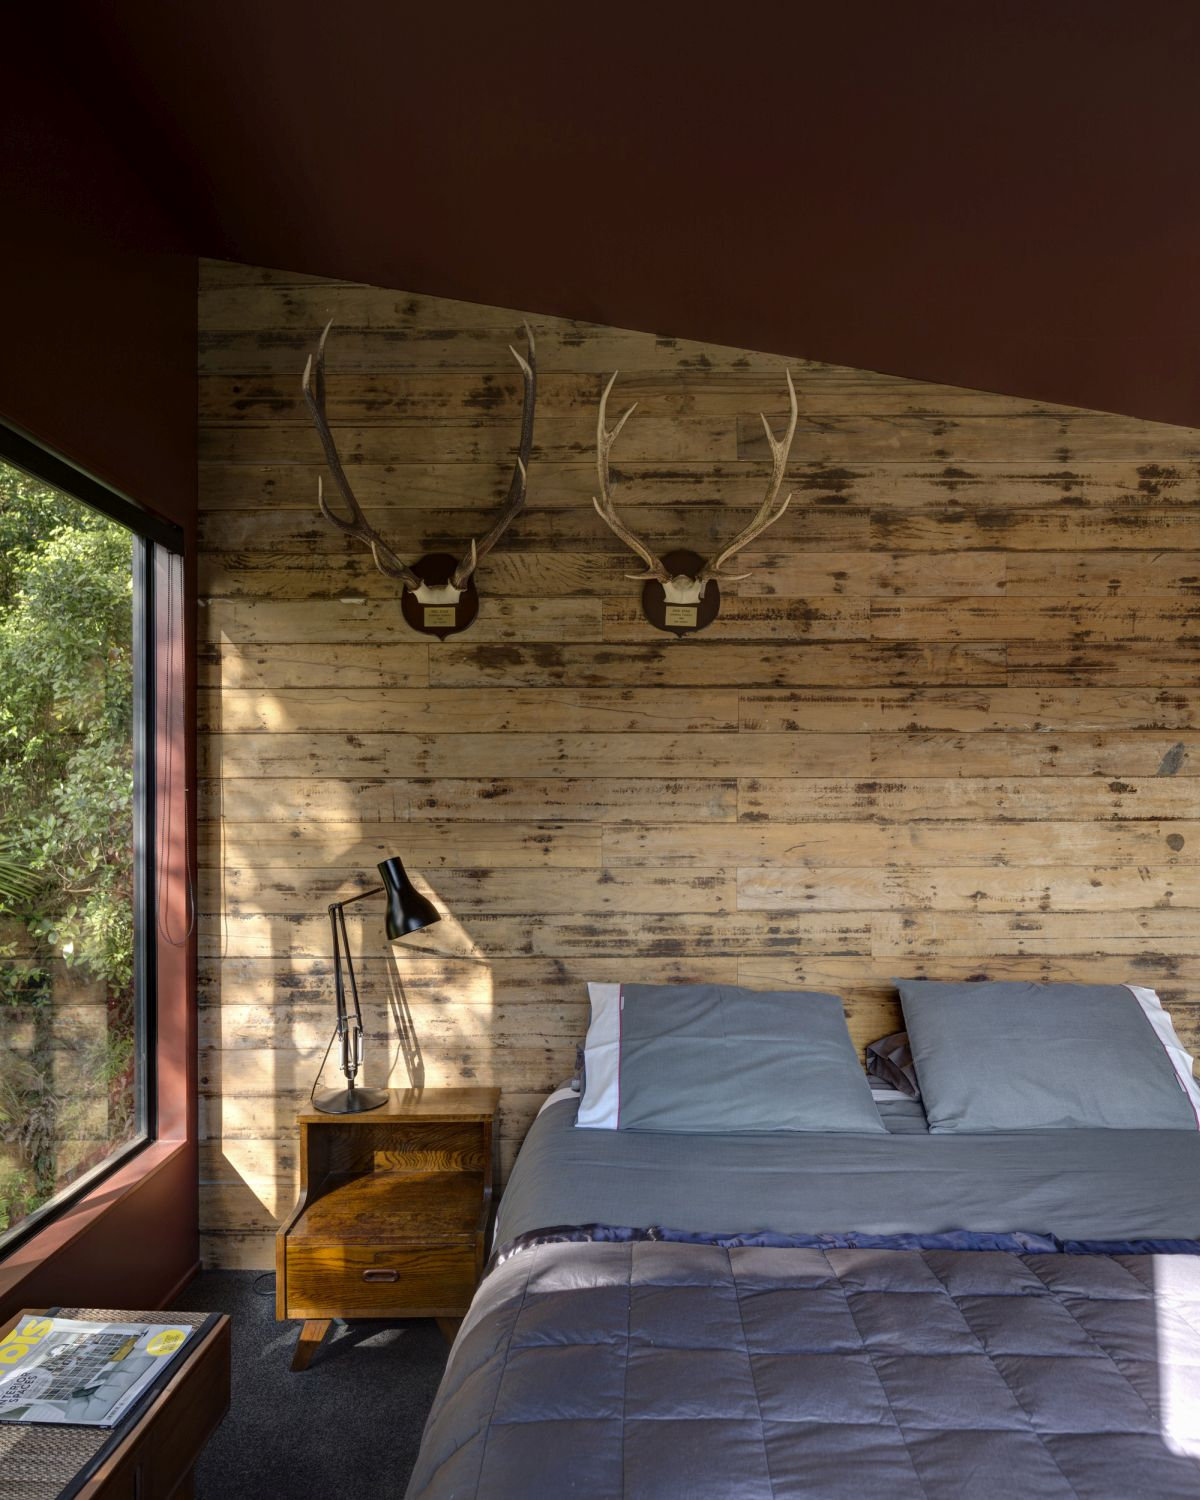 The wood-paneled bedroom wall and angled ceiling add warmth and character to the space